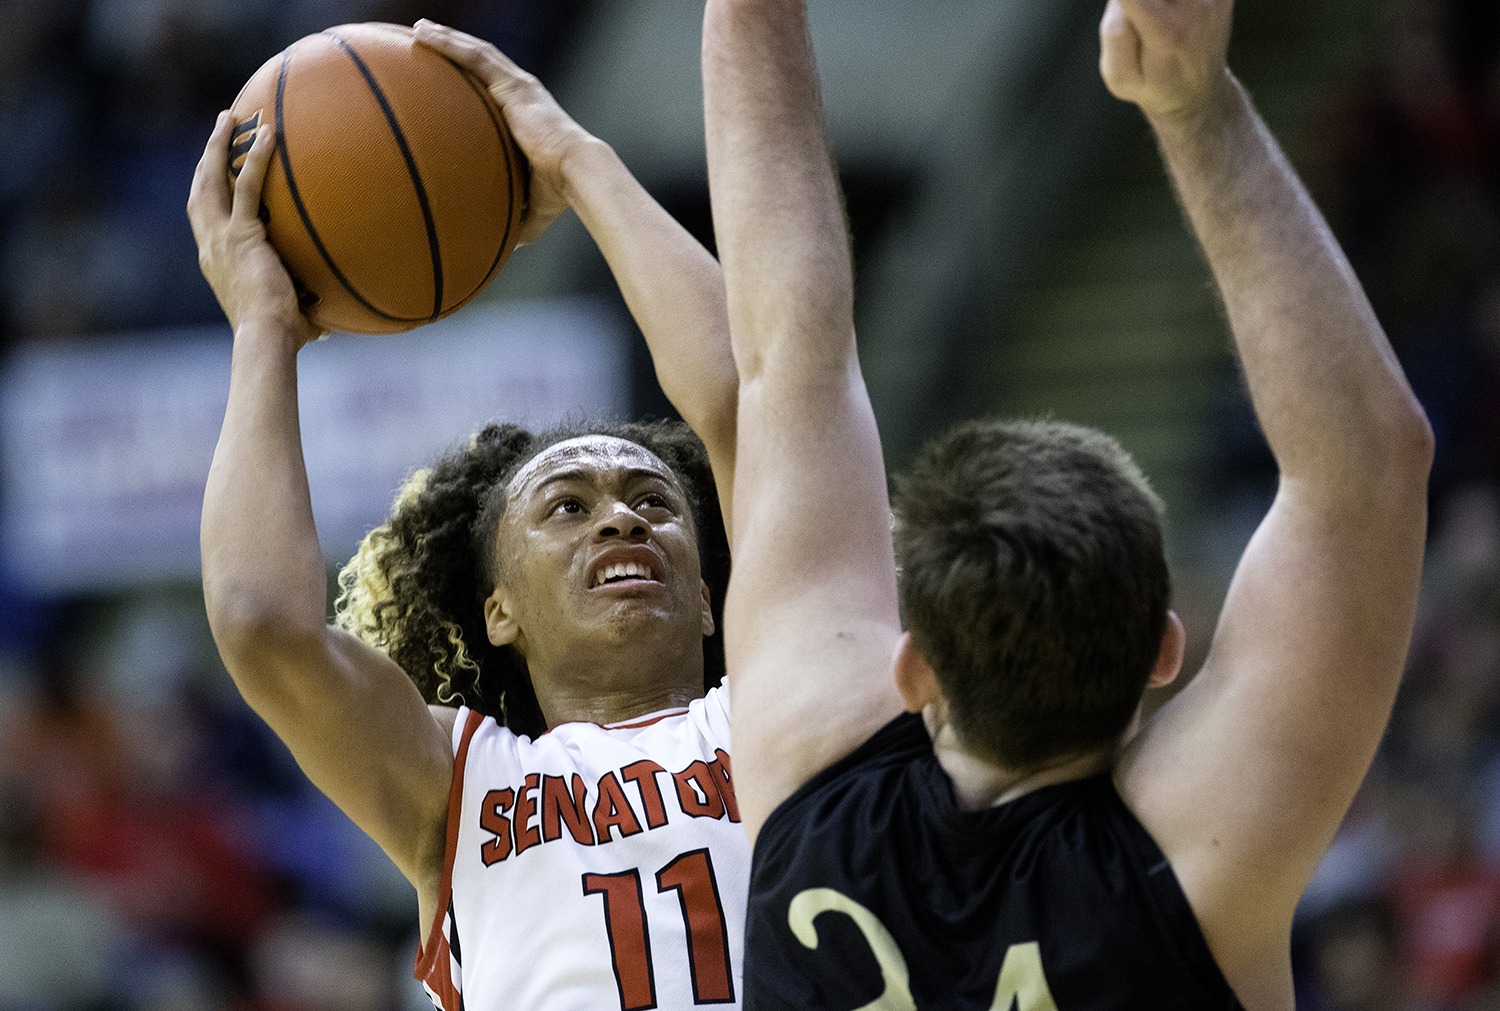 Springfield's Zaire Harris drives toward Sacred Heart-Griffin's Nick Broeker during the Boys City Tournament at the Bank of Springfield Center Saturday, Jan. 20, 2018. [Ted Schurter/The State Journal-Register]